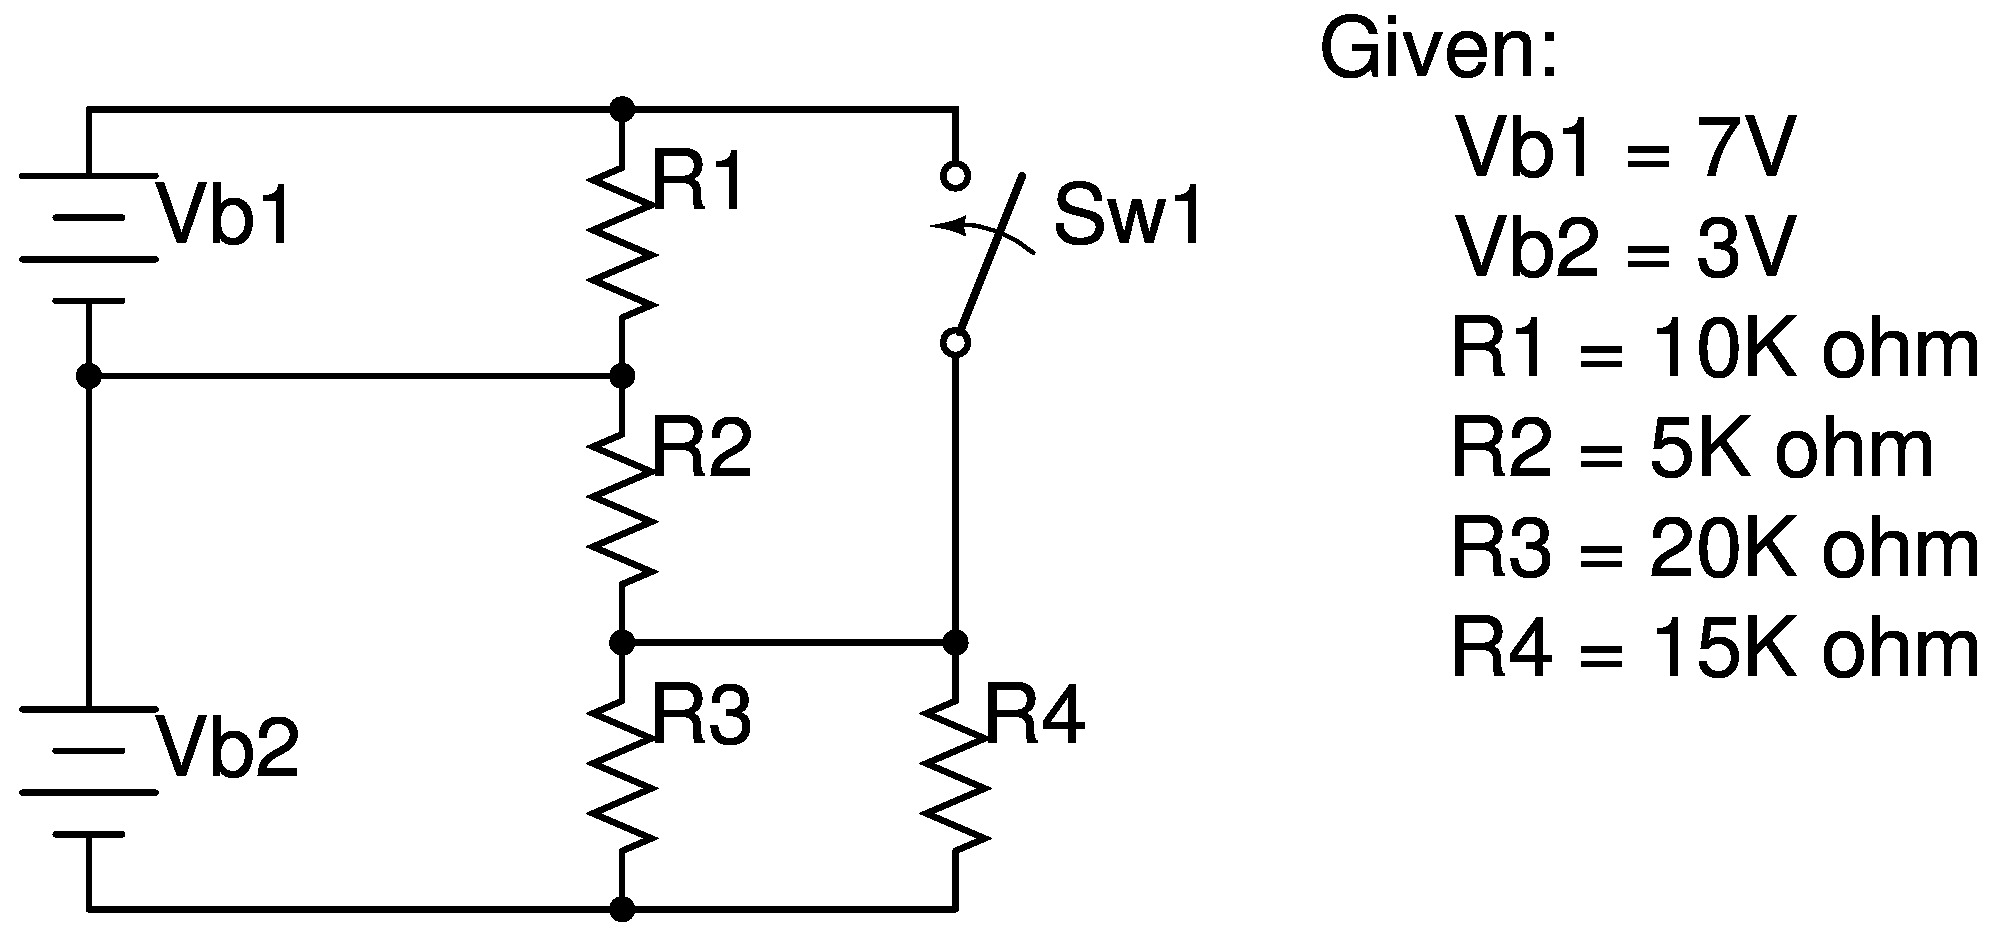 Basic Electronic Exercises Teach Me To Make Series Circuit With A Voltage Source Such As Battery Or In This Exercise 20